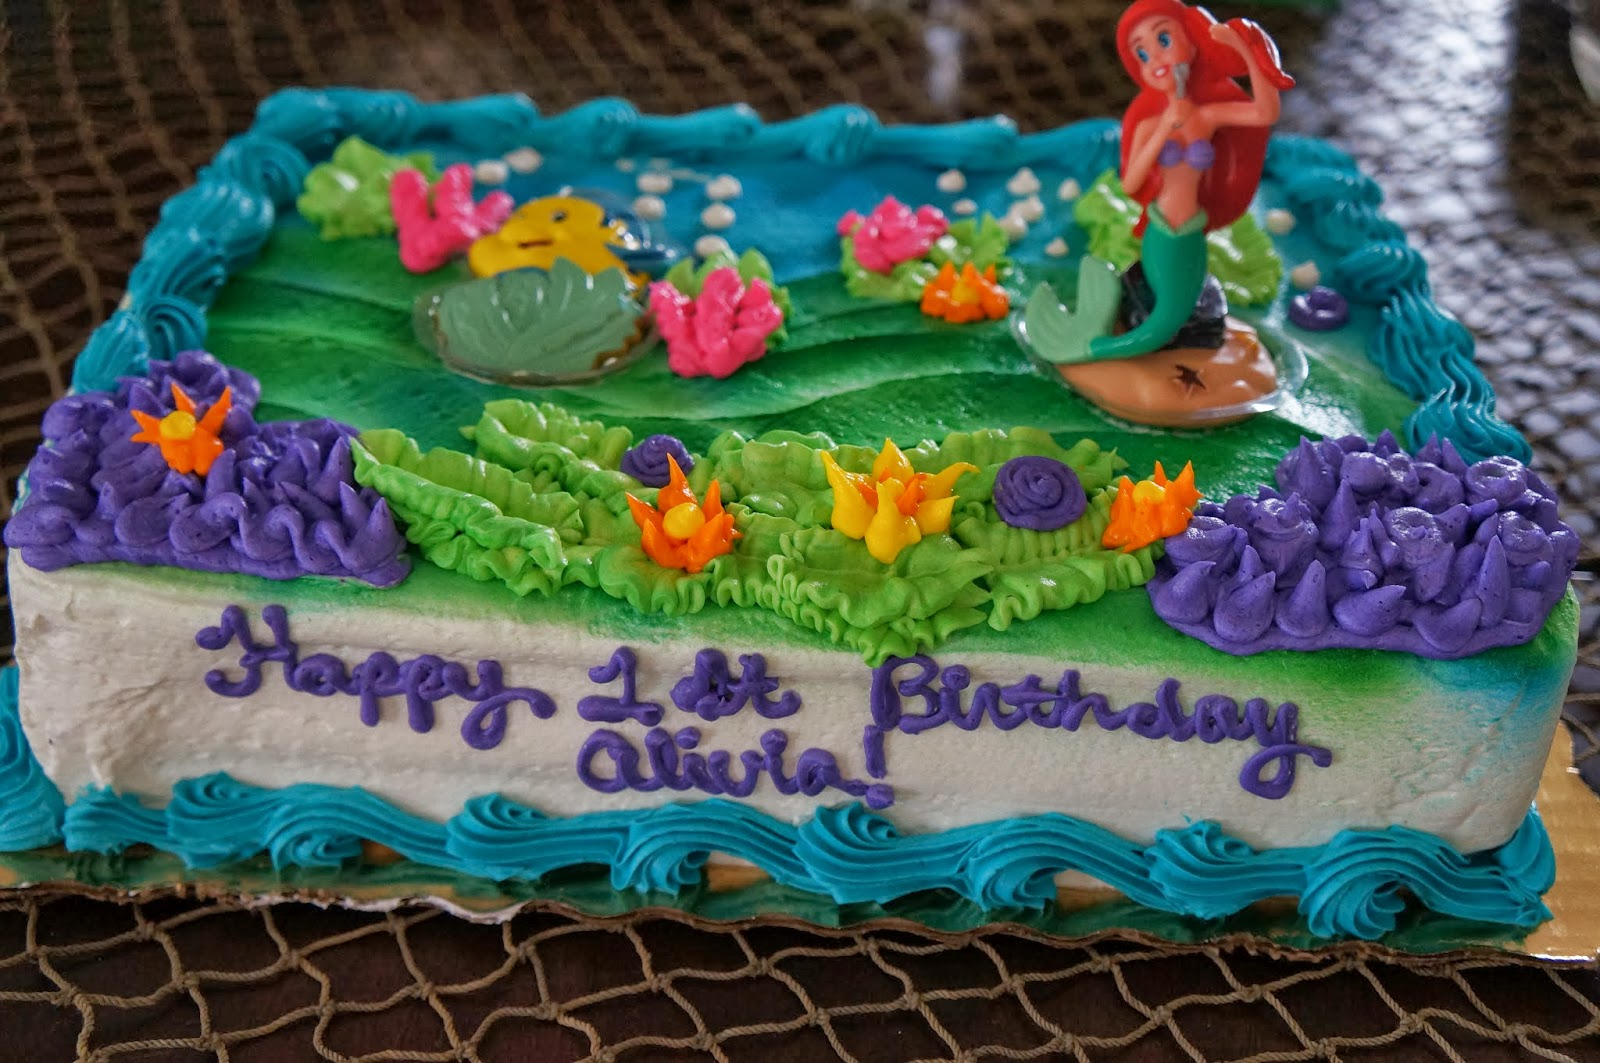 Little Mermaid Cakes From Publix Photo Cake JPG 1600x1063 Frozen Pull Apart